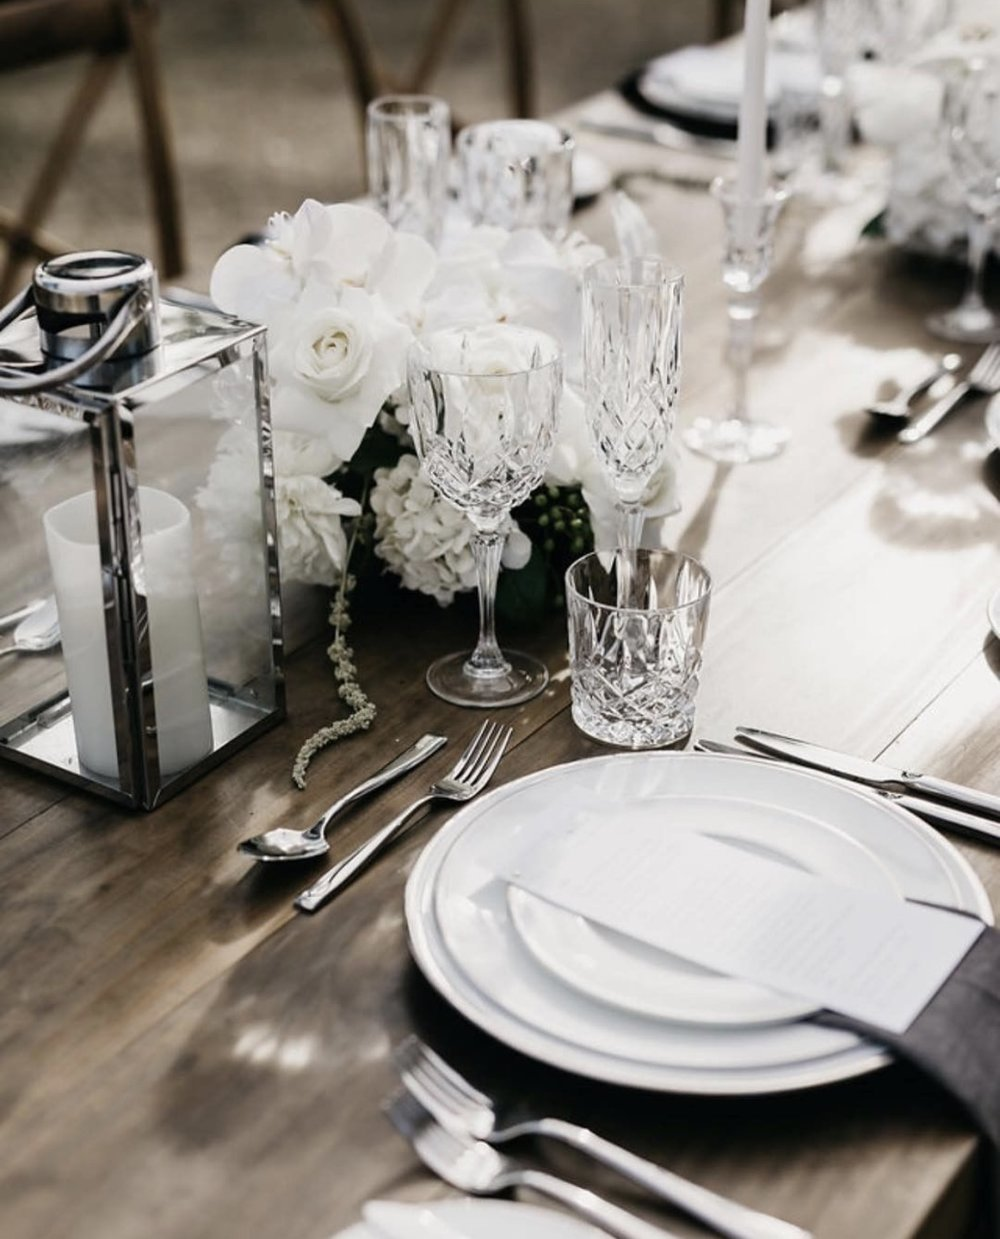 Waterford Crystal Glassware + Limoges platinum charger plate + Waterford dinnerware + Charcoal French Linen Napkins - Photography by Cassandra Ladru